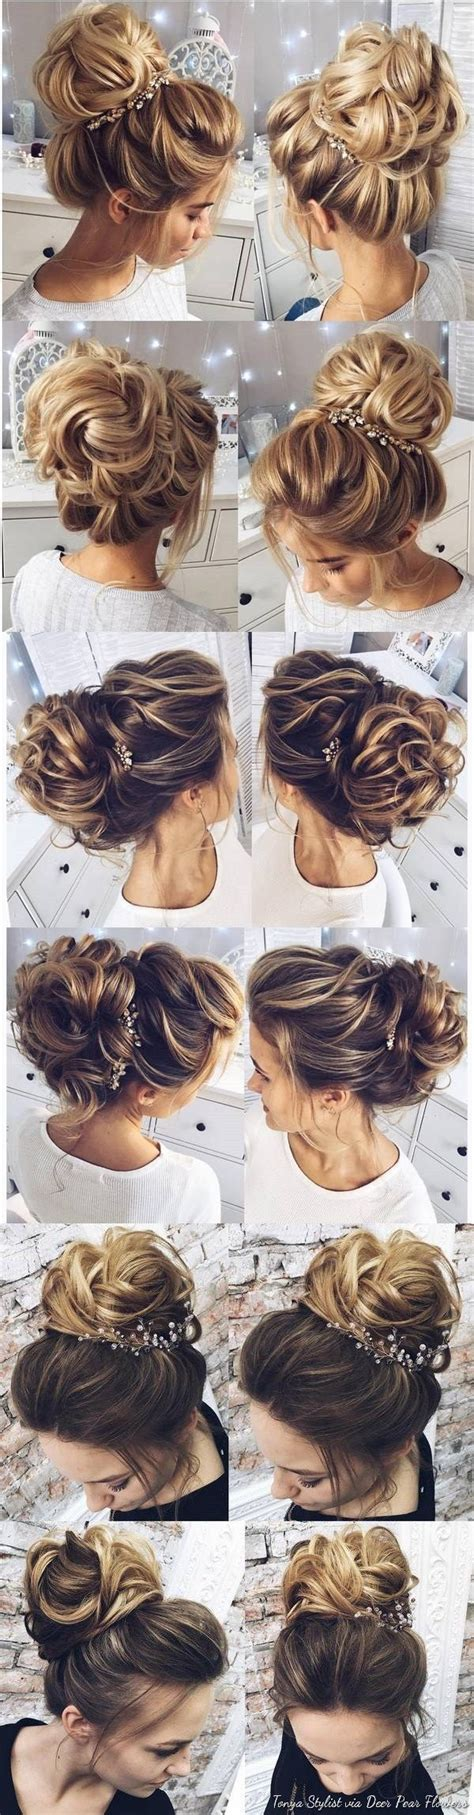 Wedding Day Hairstyles Hair by 25 Best Ideas About Wedding Hairstyles On